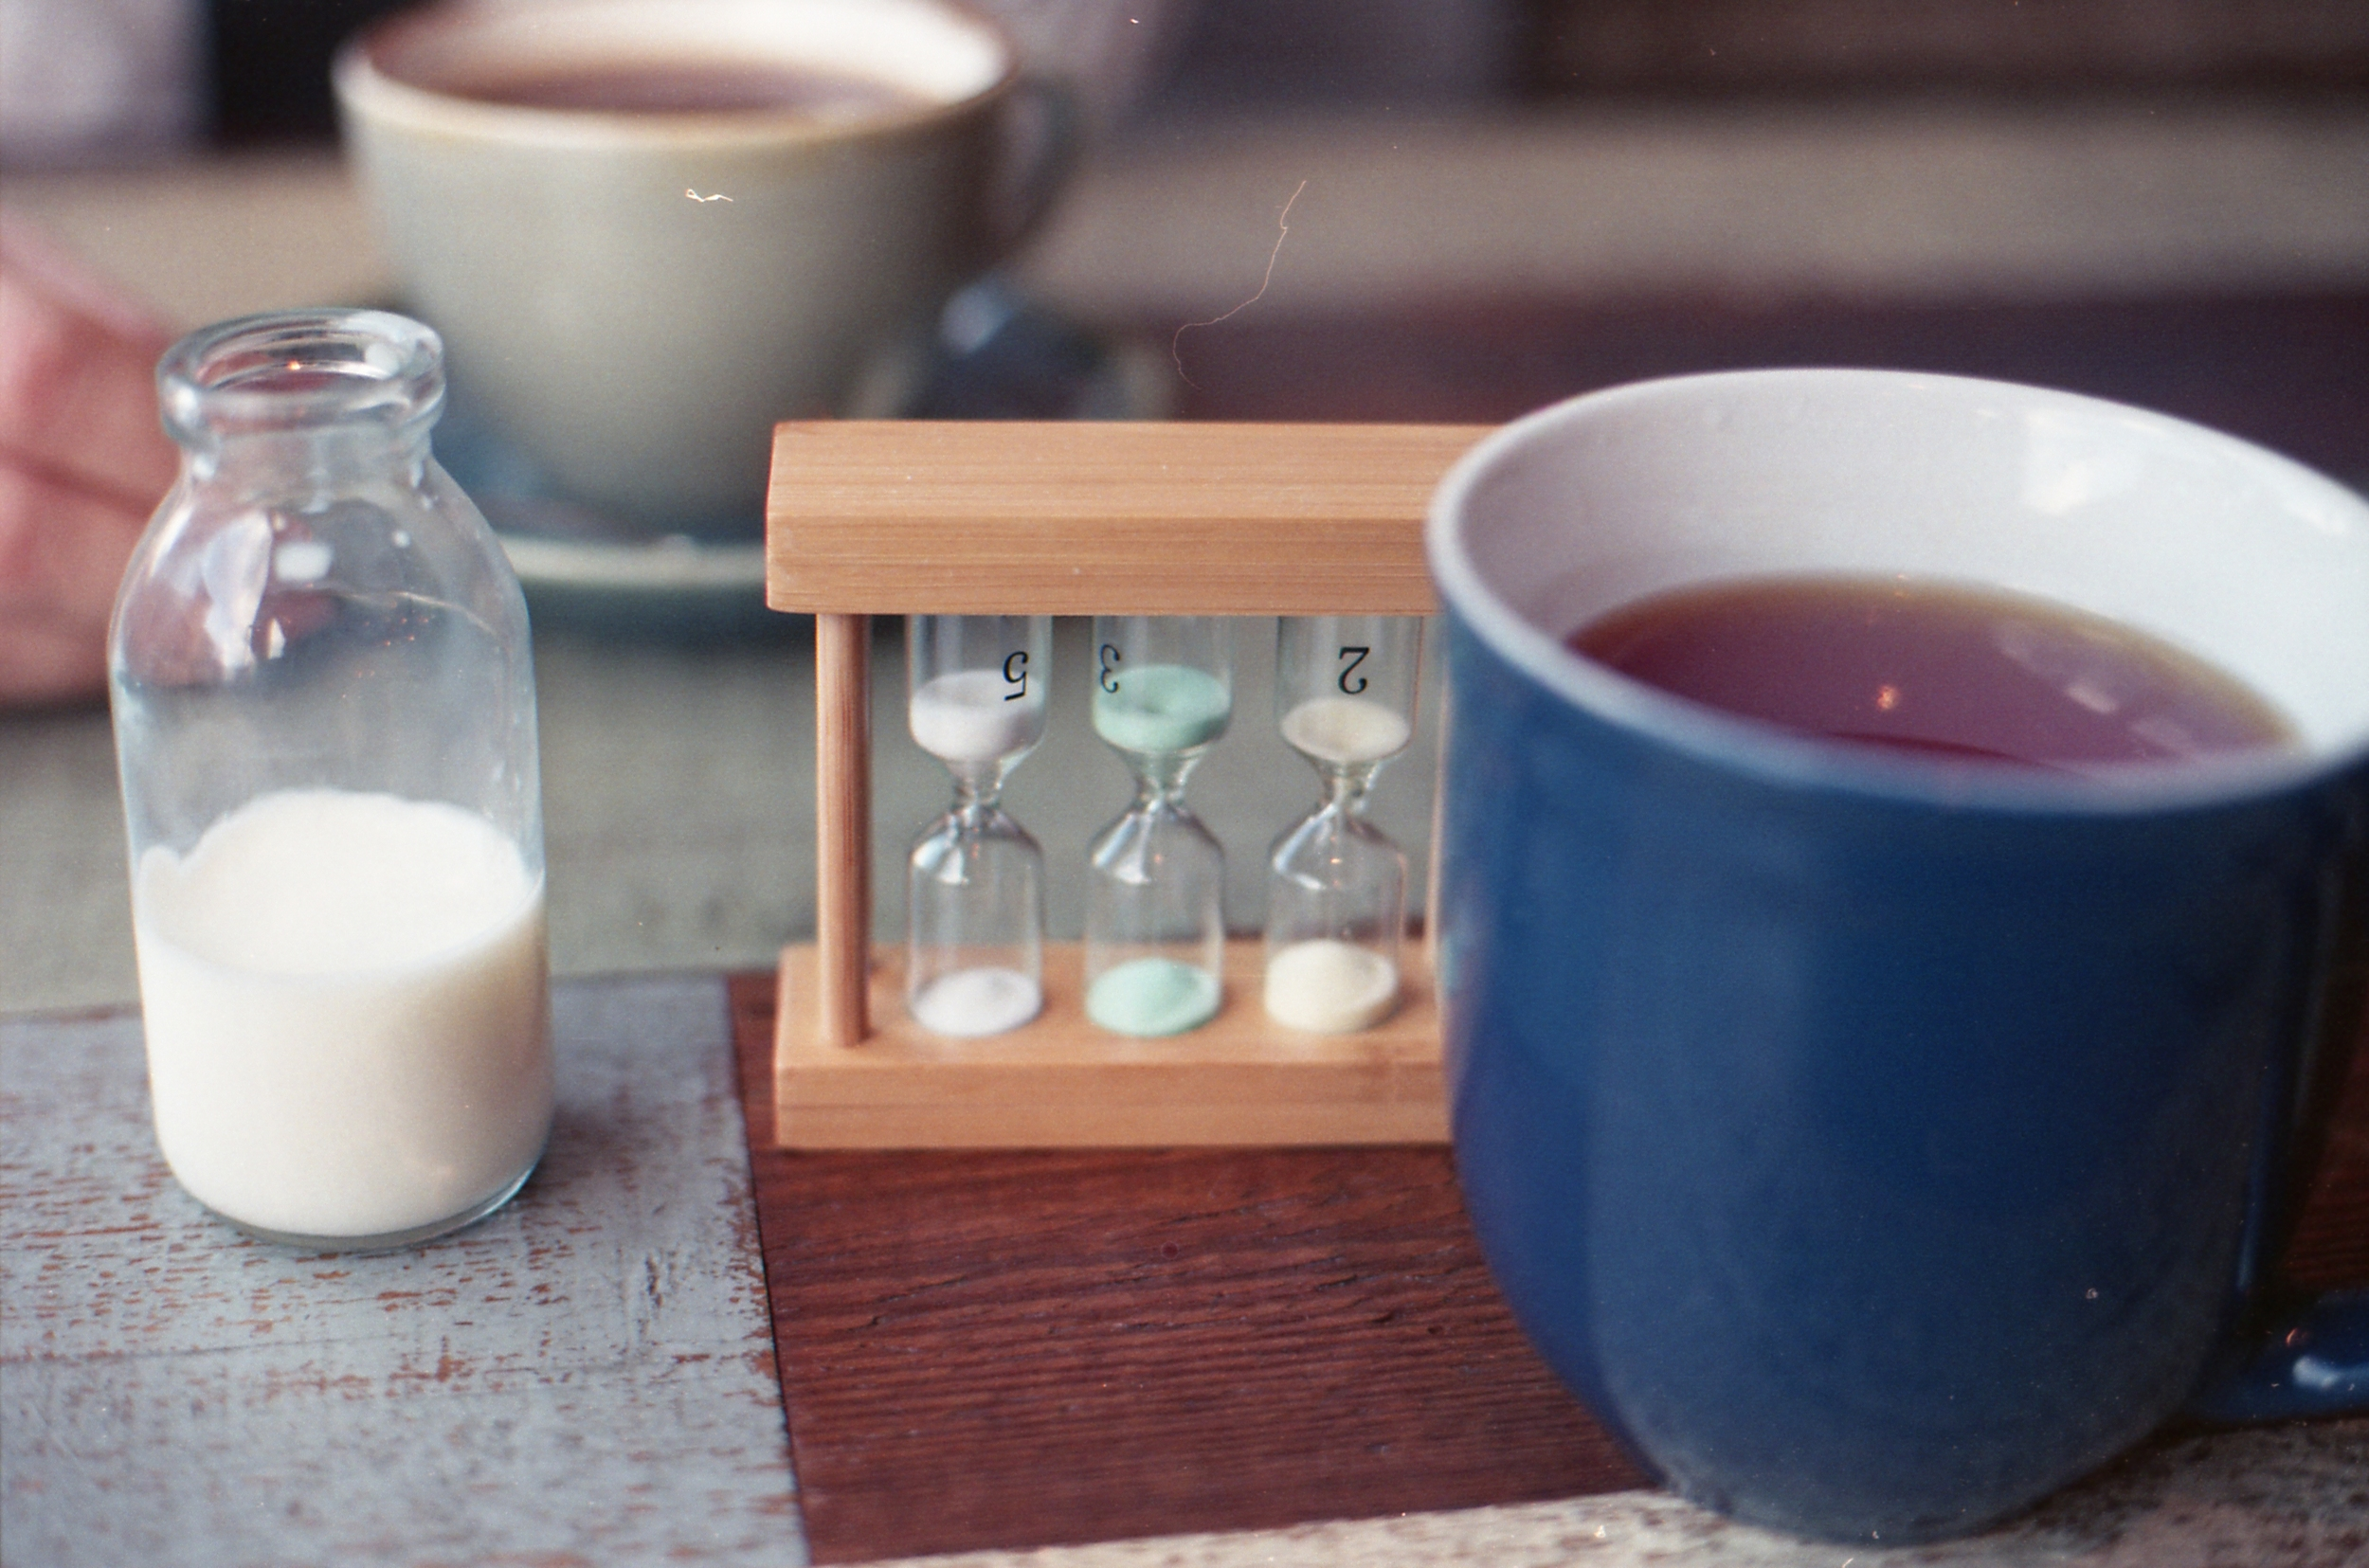 54/366 - How fun is this tea timer. I only leave mine about a minute and I don't have the milk but the little bottle is cute!